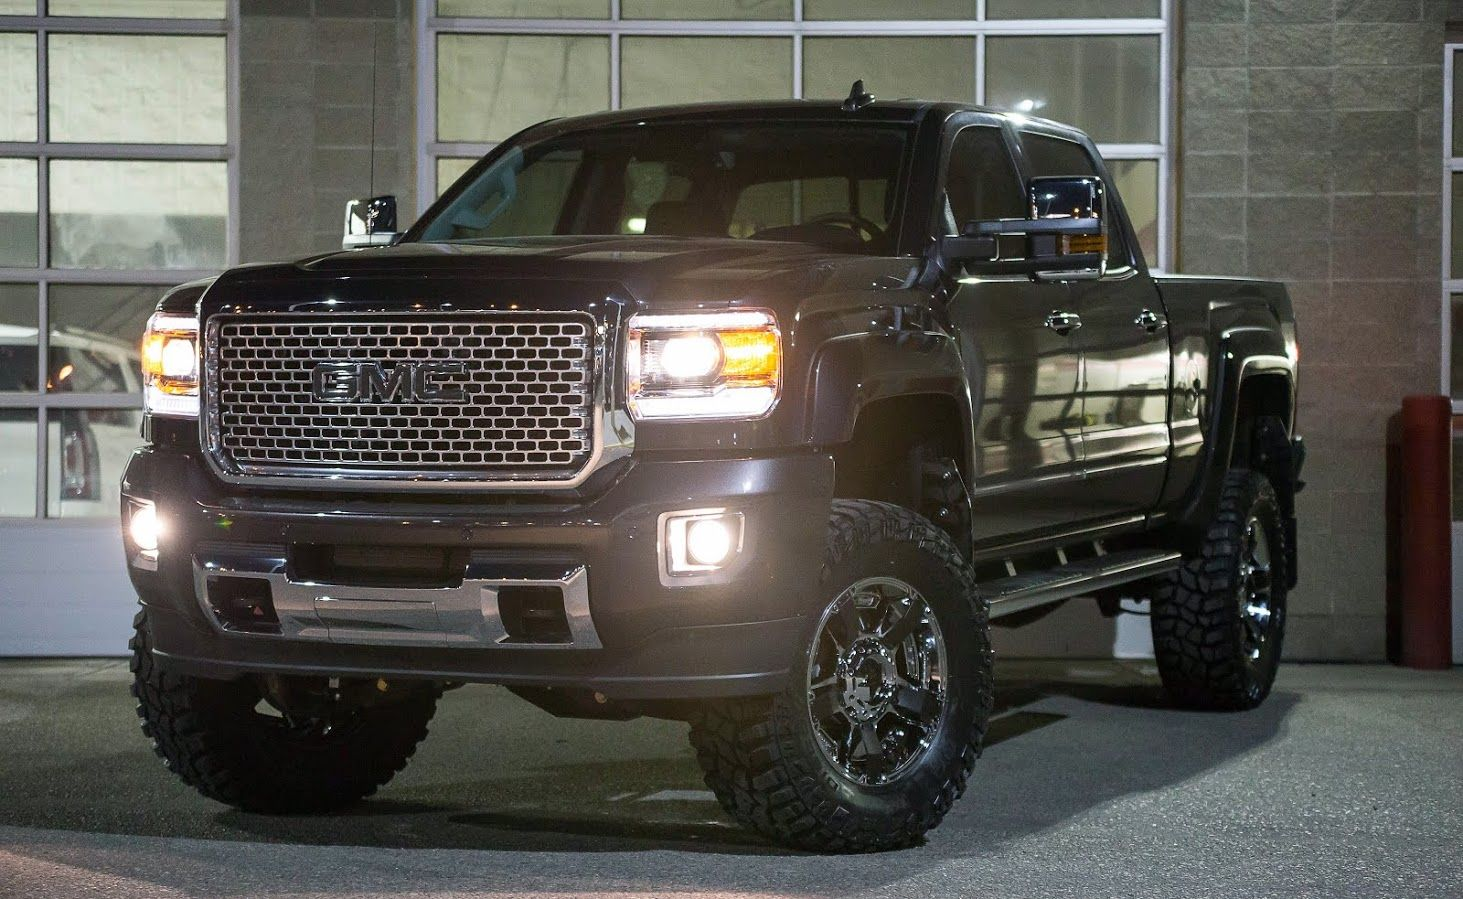 Truck tuesday featuring a customer s iridium metallic 2015 gmc sierra 2500 customized by the davis